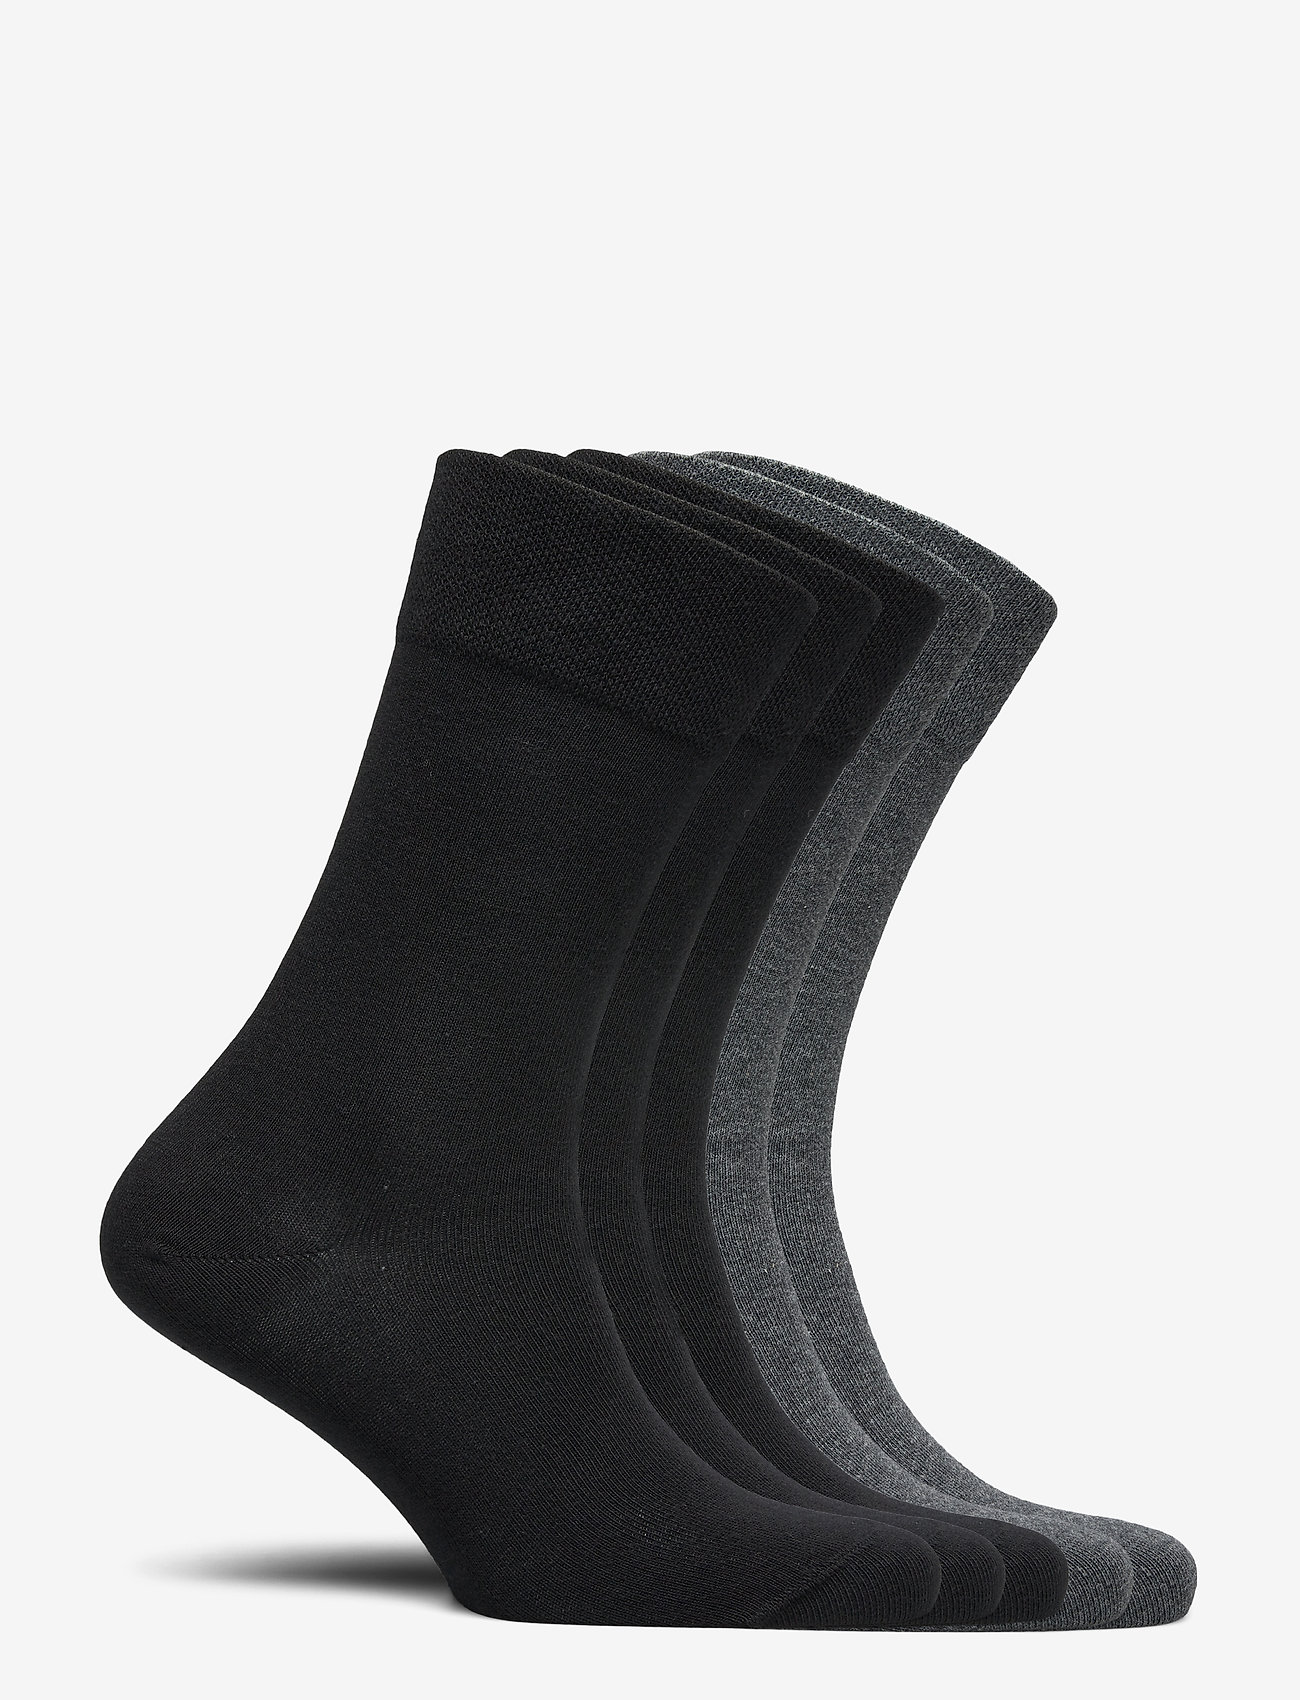 Socks (Assorted 1) (19.95 €) - Schiesser G7lZP